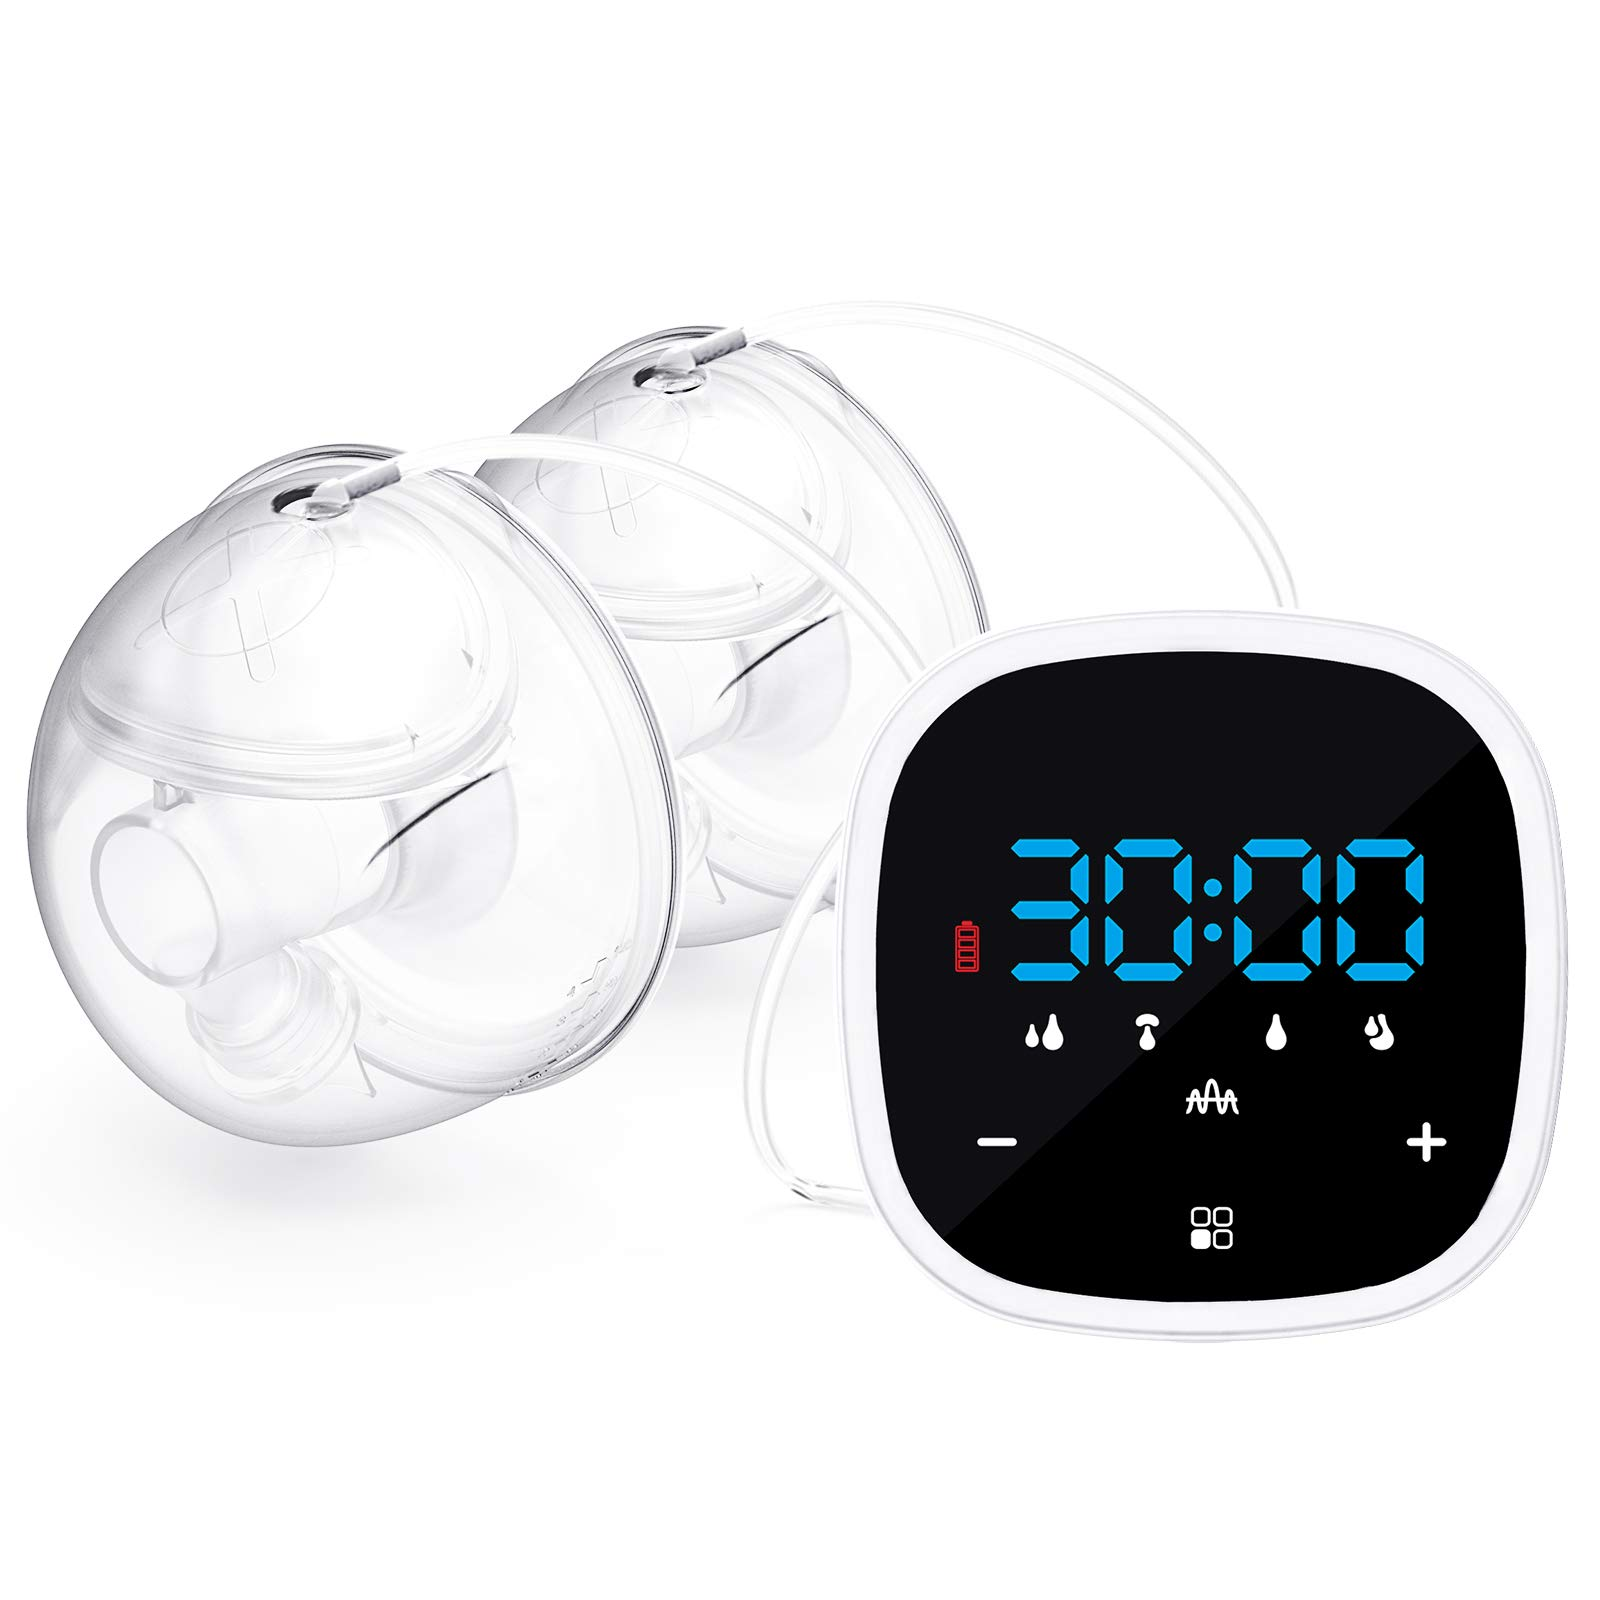 Wearable Electric Double Breast Pump 5 Modes & 7 Levels Strong Suction Power, Memory Function Silent, 24-27mm Flange,Hands-Free,Rechargable,Invisible Wear,Touch Button Digital Display Hospital Grade